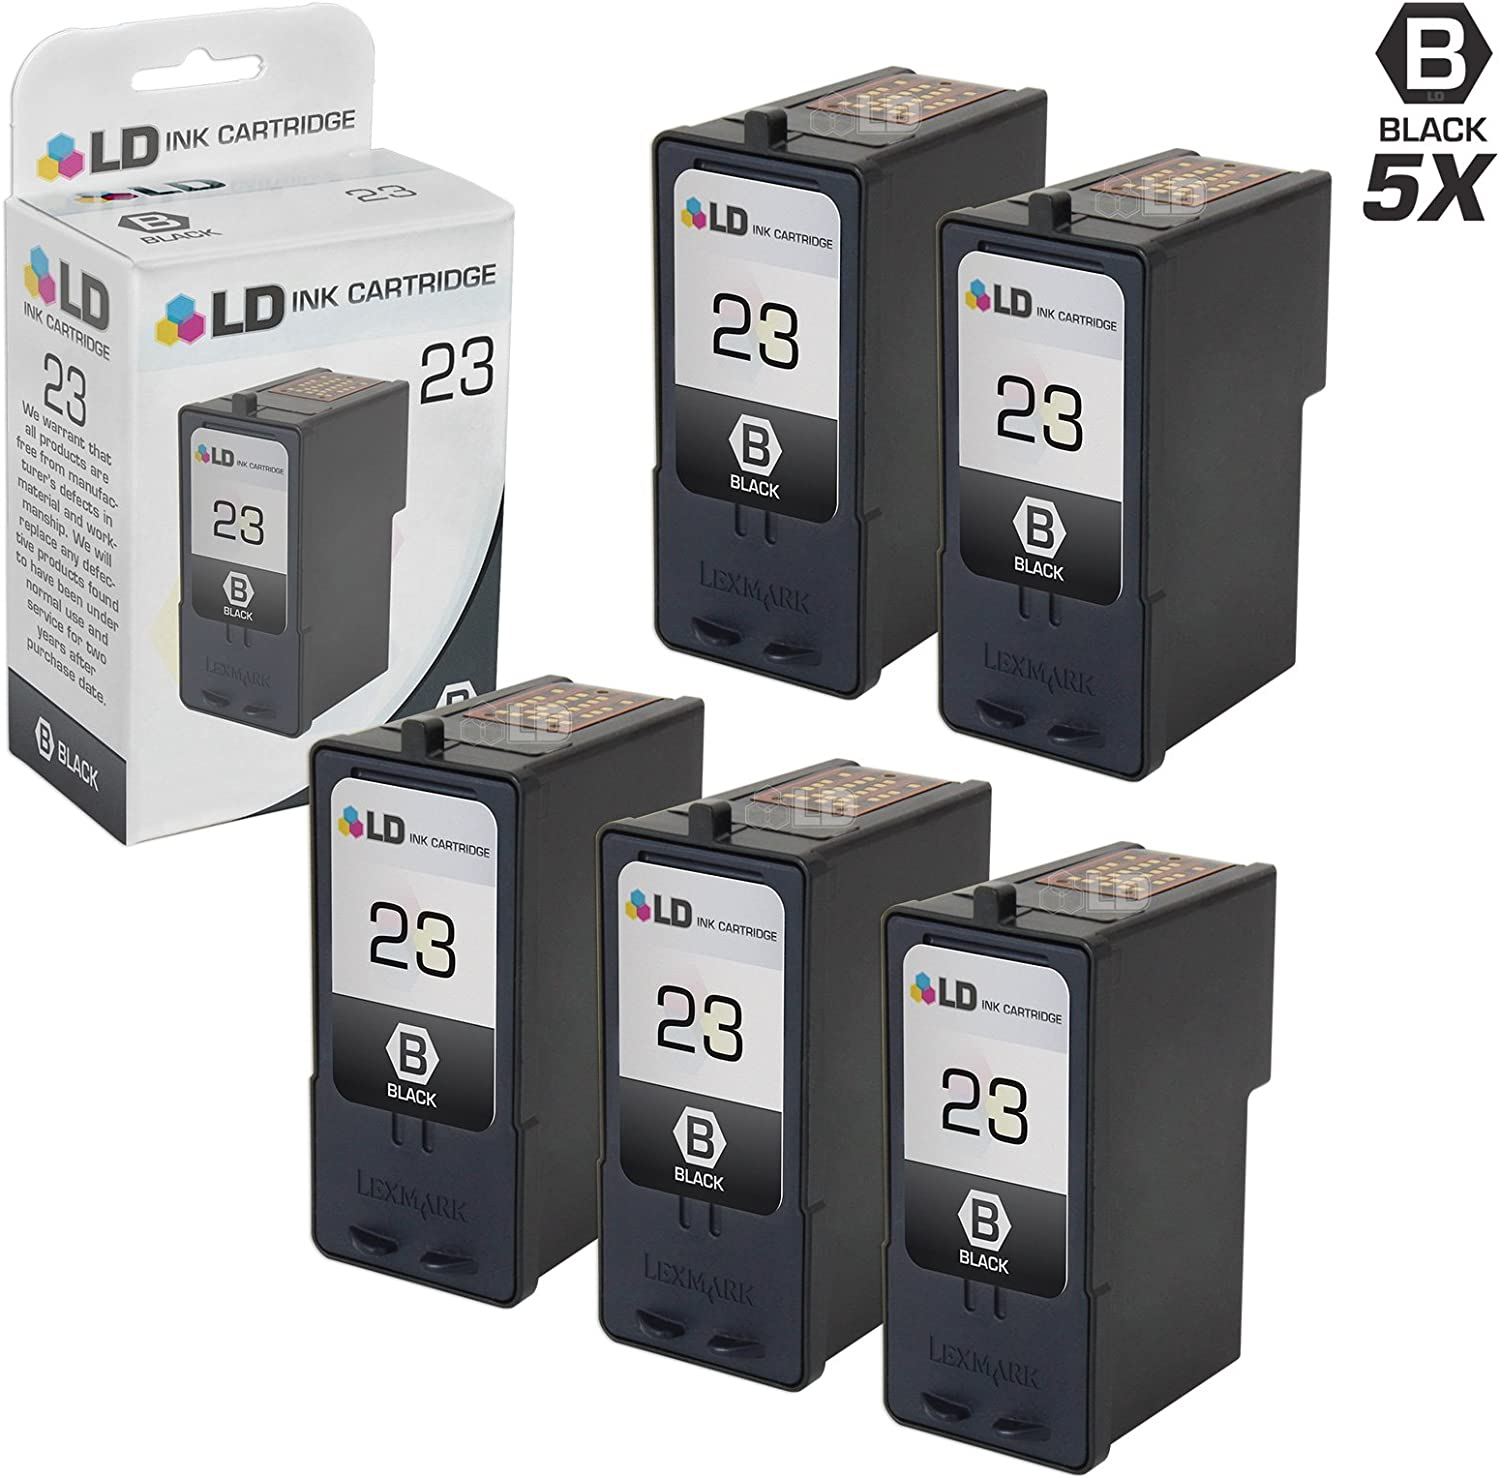 Color,1 Pack 18C2140 SuppliesOutlet Remanufactured Ink Cartridge Replacement for Lexmark 18C2180 18C2200 18C2160